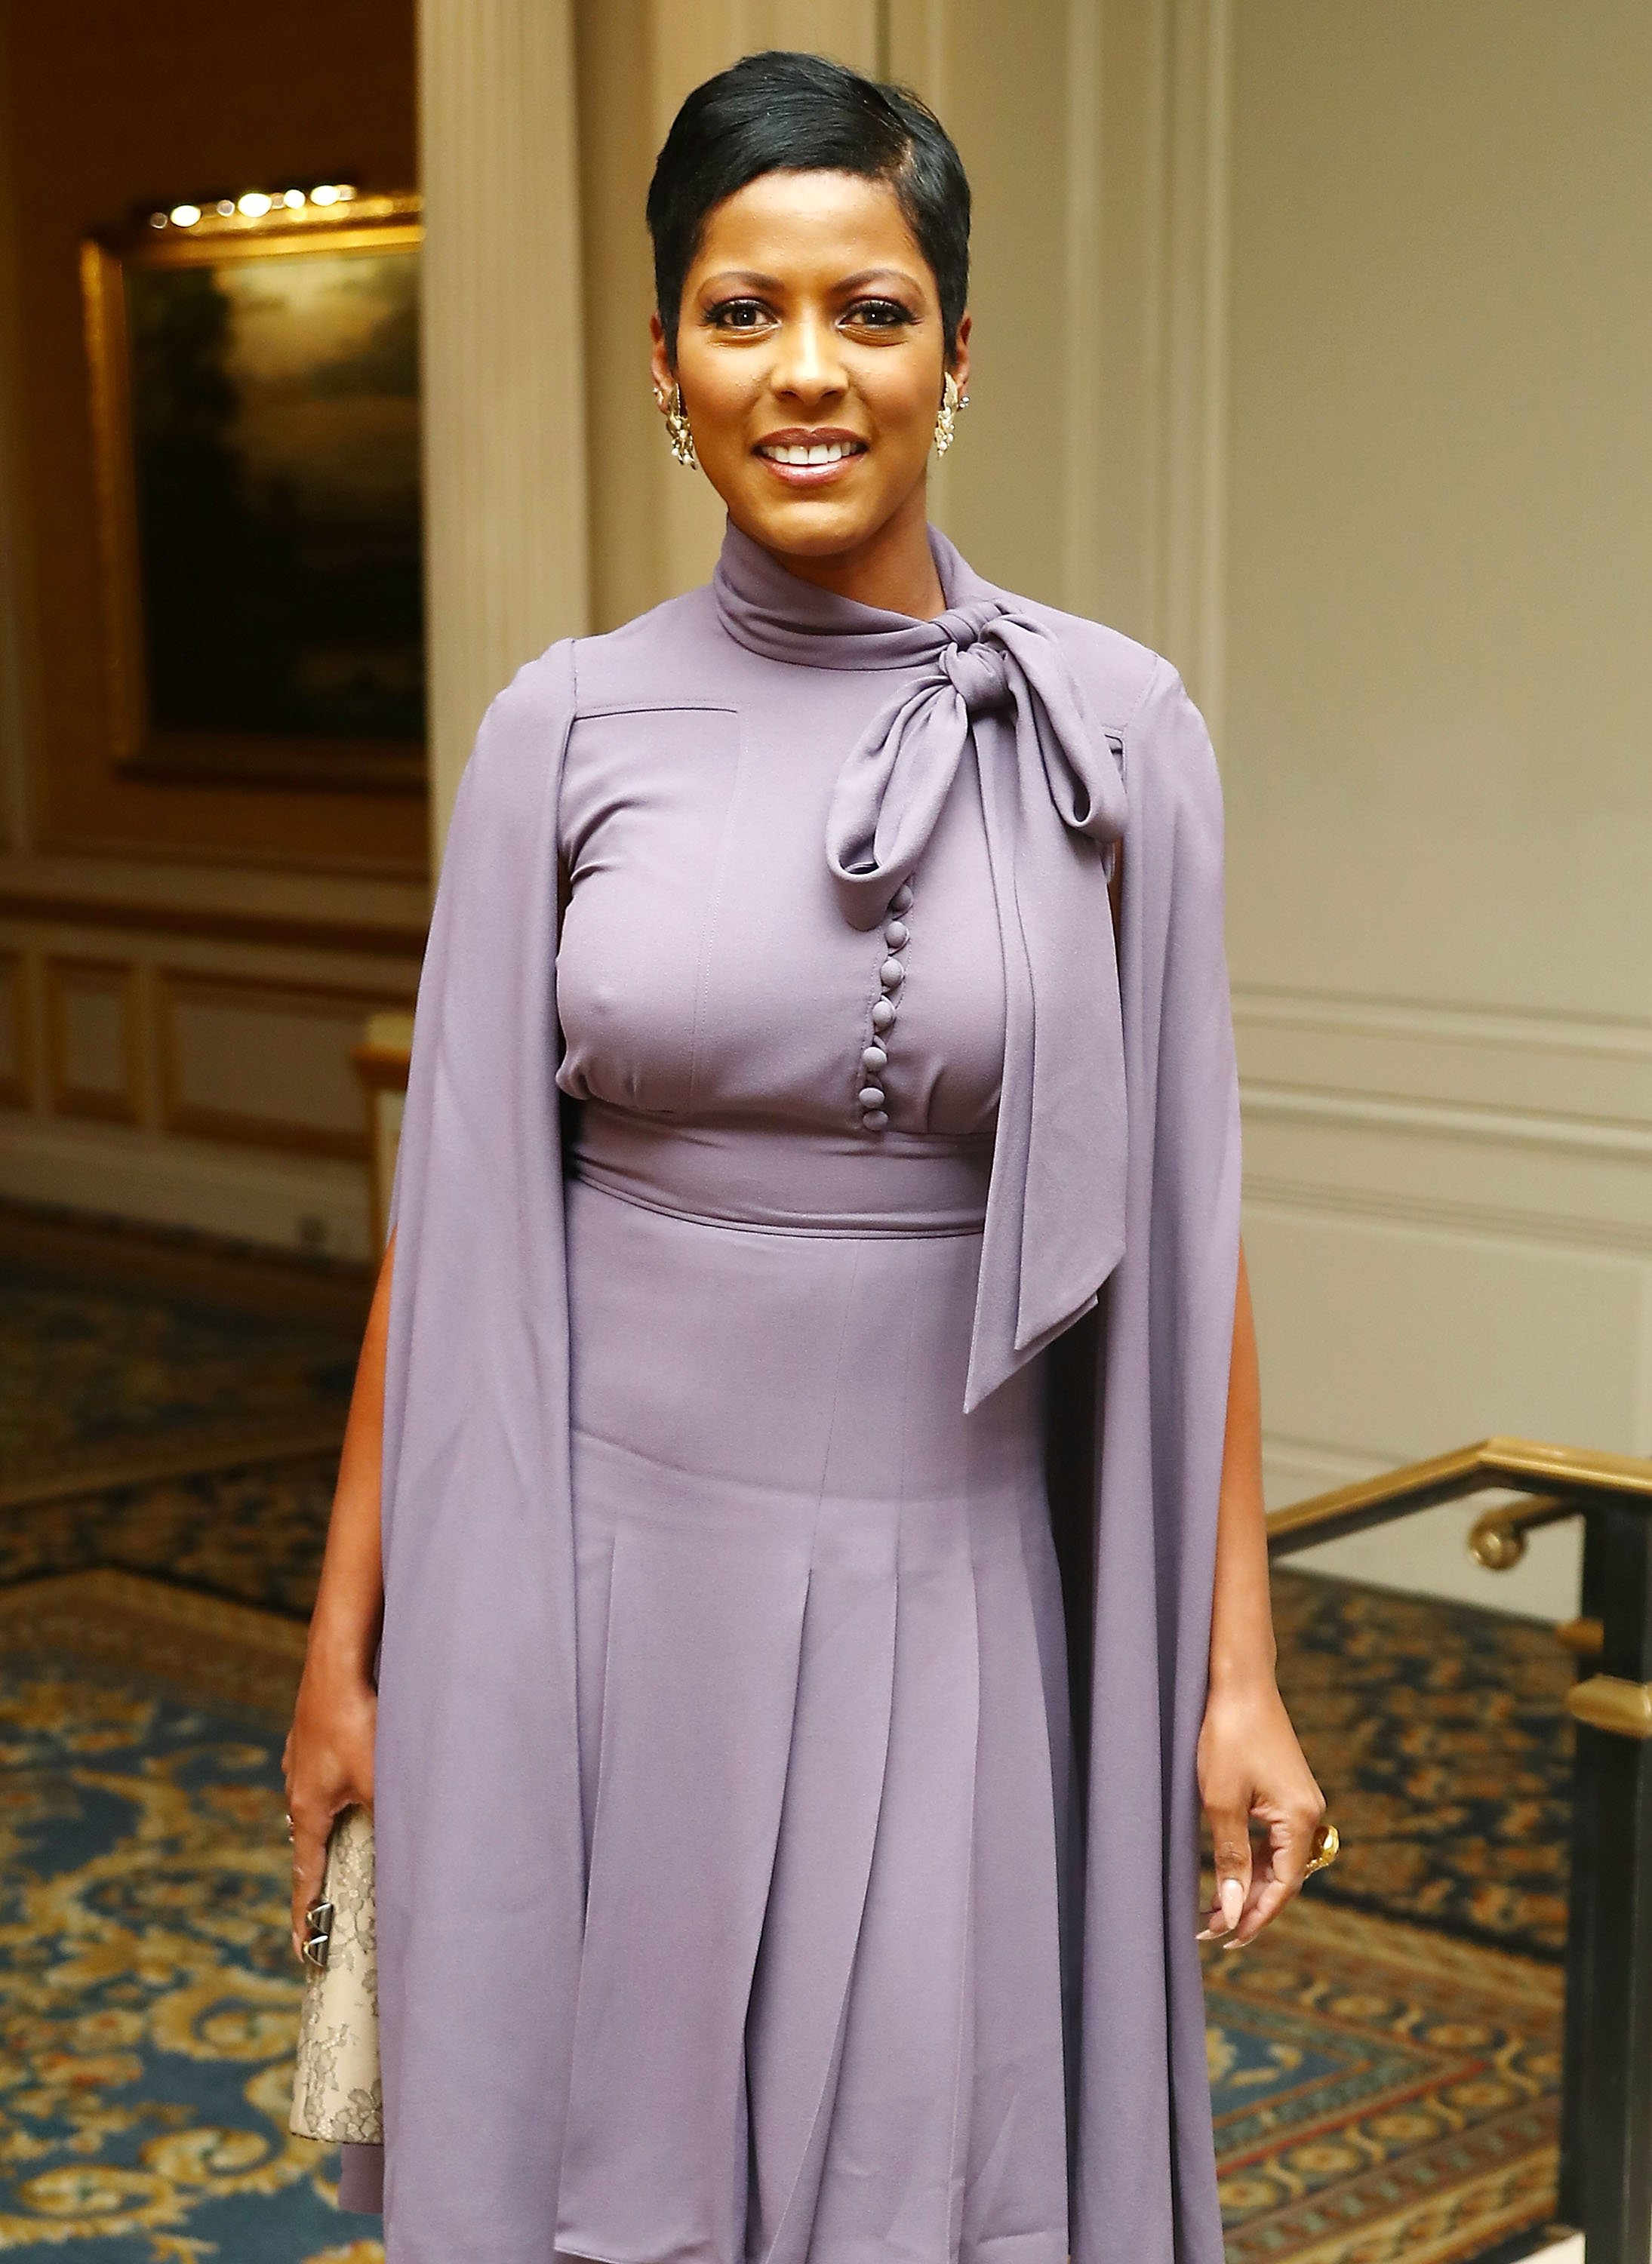 Tamron Hall attends the 11th annual Moving Families Forward gala in New York City on October 23, 2017 | Photo: Getty Images